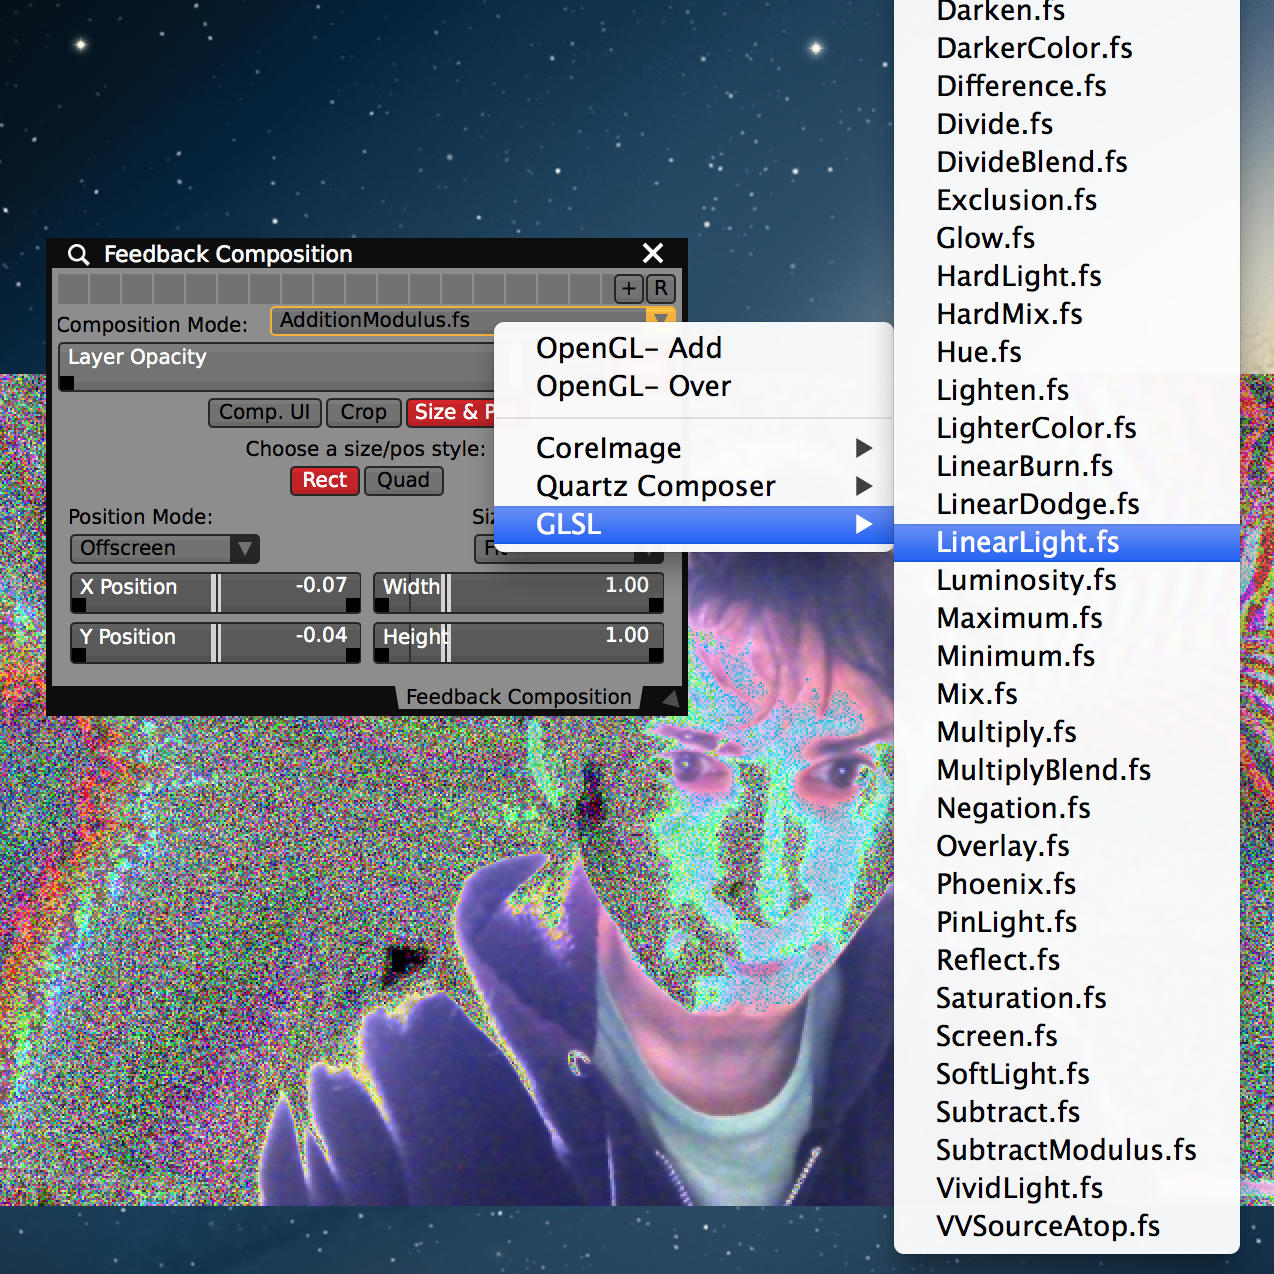 Try selecting different composition modes for the 'Feedback' layer to get glitch and other visual styles.